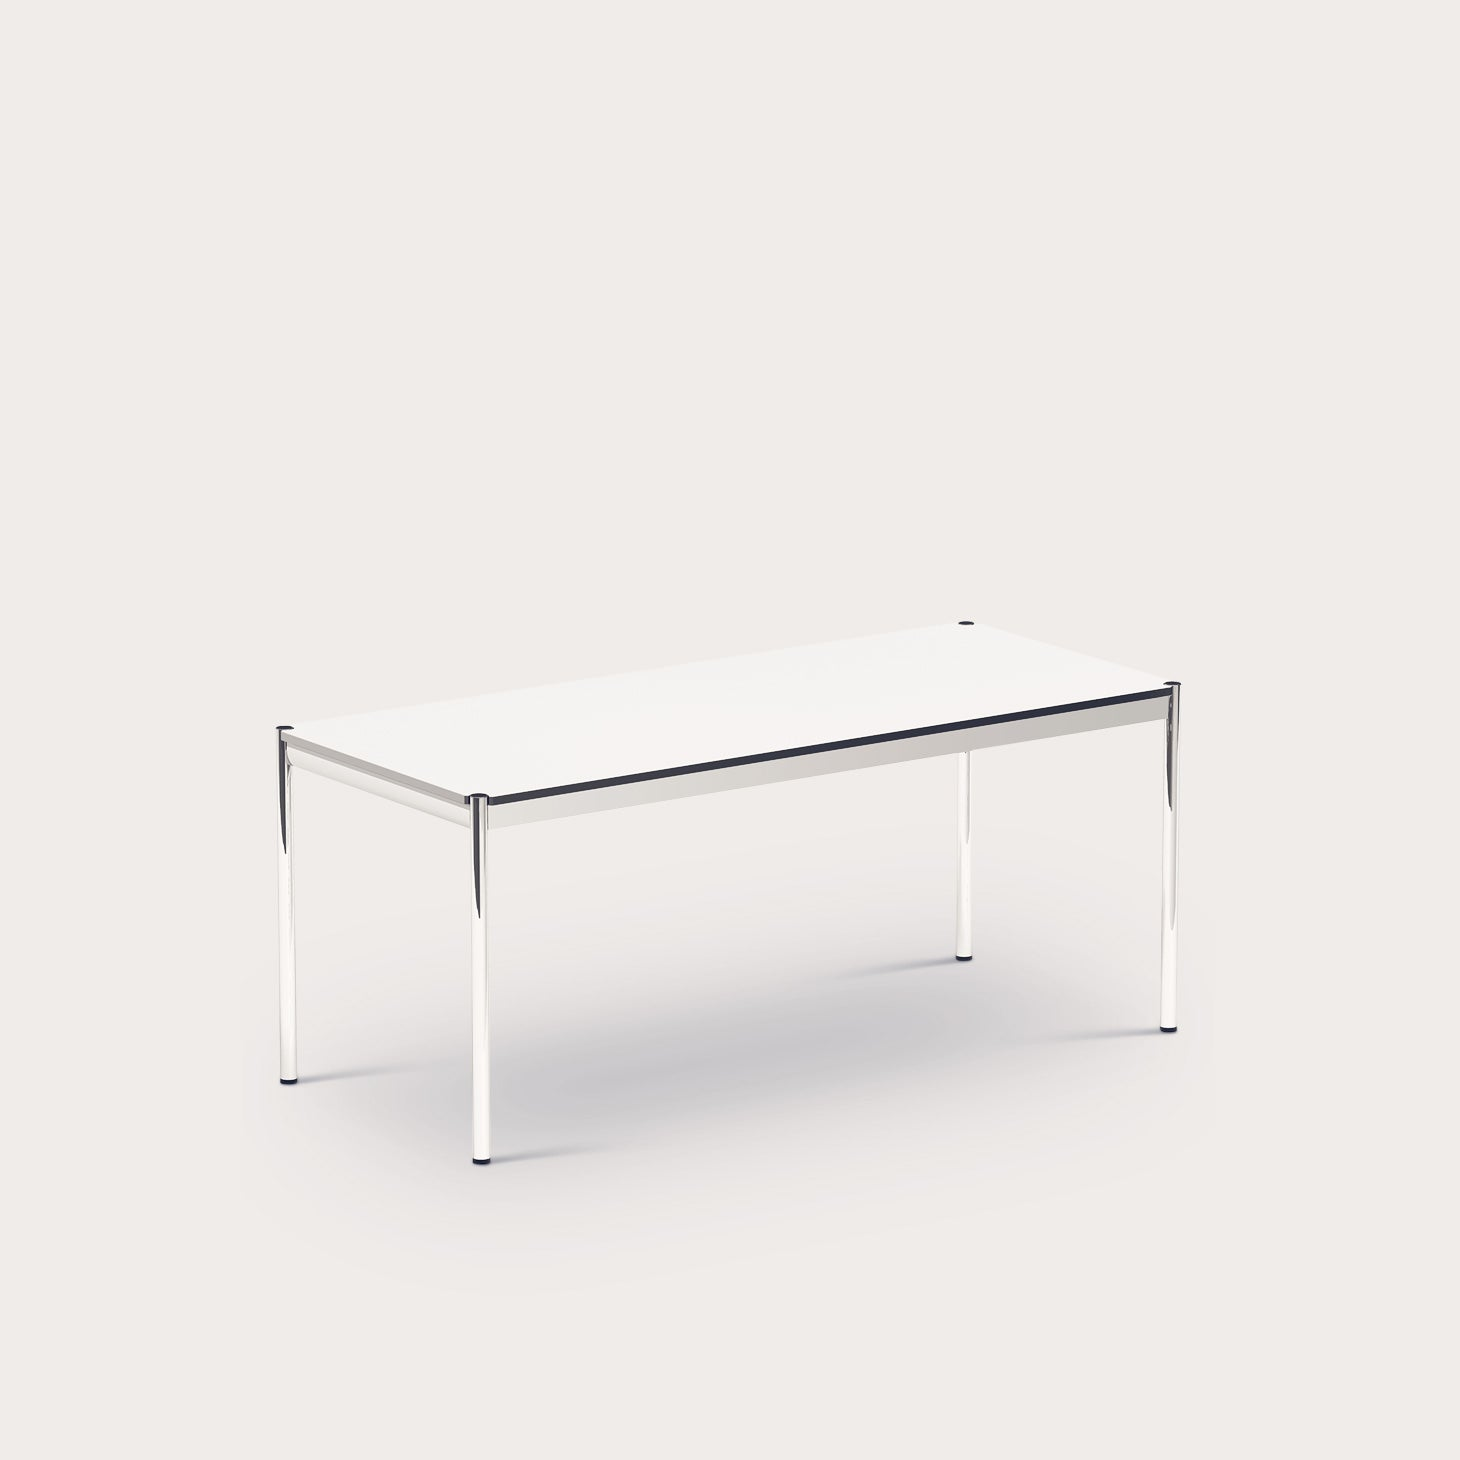 Haller Table T69 Storage Fritz Haller Designer Furniture Sku: 000-180-20042